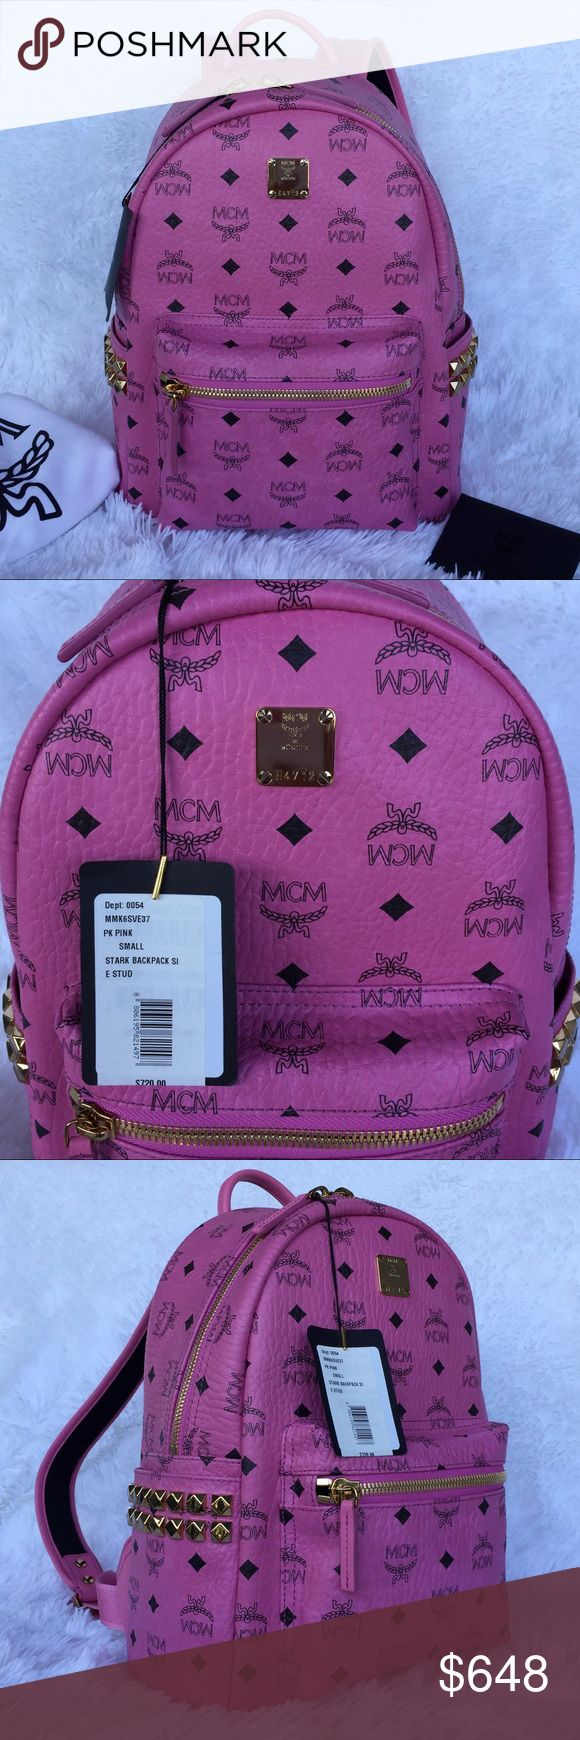 NEW MCM STARK BACKPACK IN SIDE STUDDED VISETOS Authentic. Made in Italy. Brand new with tags. This backpack will come with care card and dust bag. PLEASE NO TRADE. THE PRICE IS FIRM. The ultimate hands-free accessory, crafted from signature Visetos-print coated canvas with side stud embellishment. Single top handle Adjustable shoulder straps Front zipped pocket 2 exterior flat side pockets with stud embellishment 2 interior pockets with sleeve for tablet storage Zip-around closure Faux nappa…